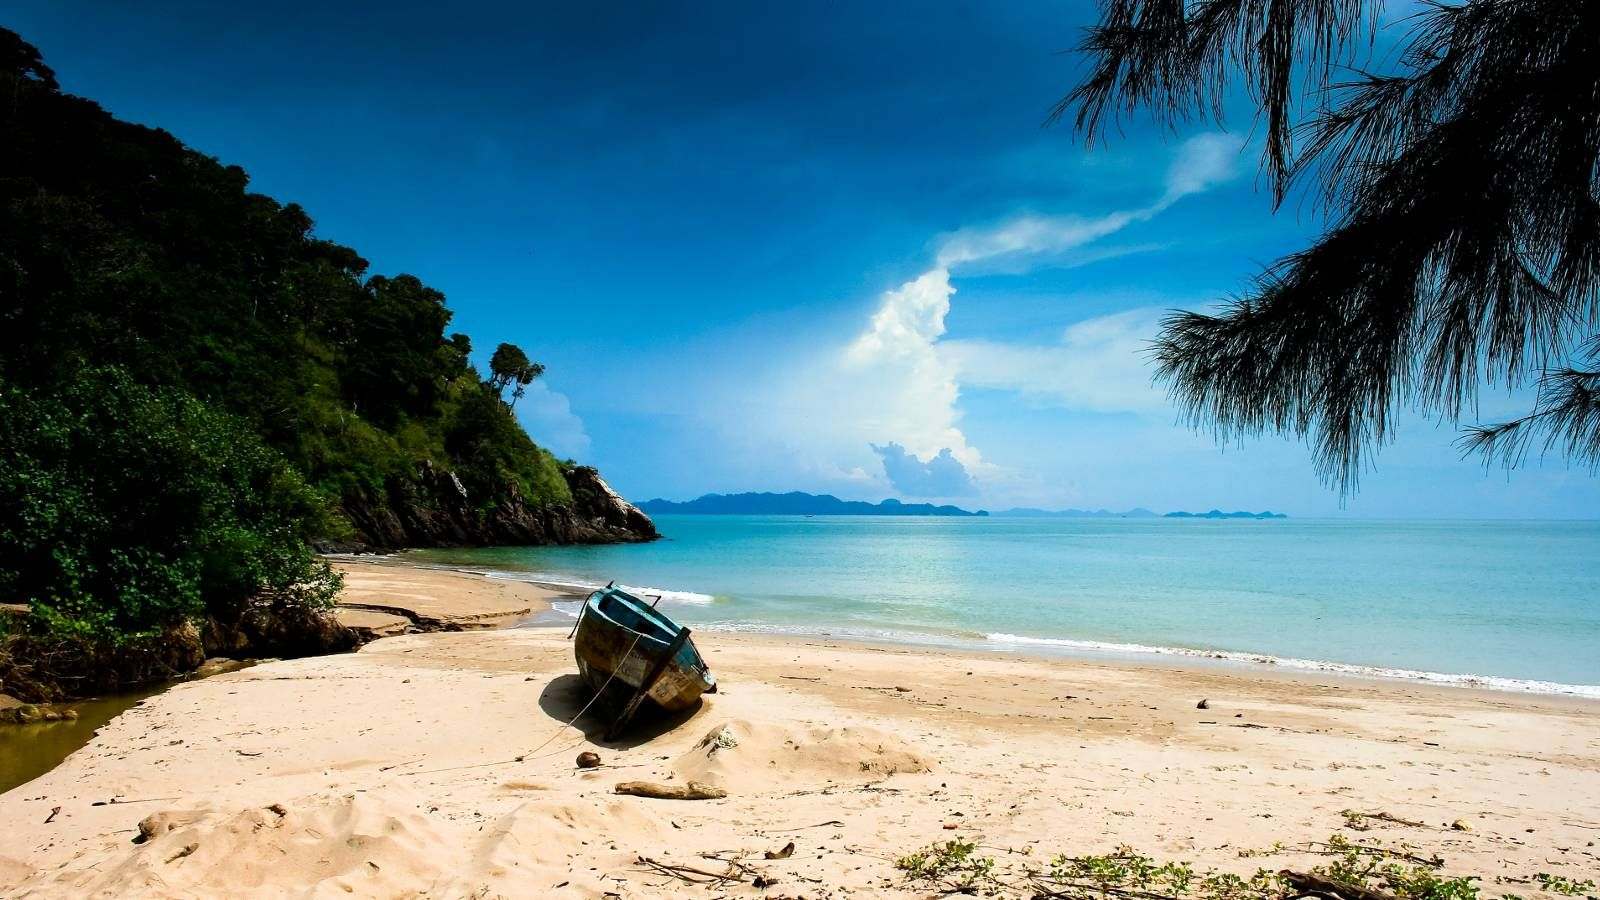 Koh Lanta Thailand beaches, Koh lanta, Beautiful islands